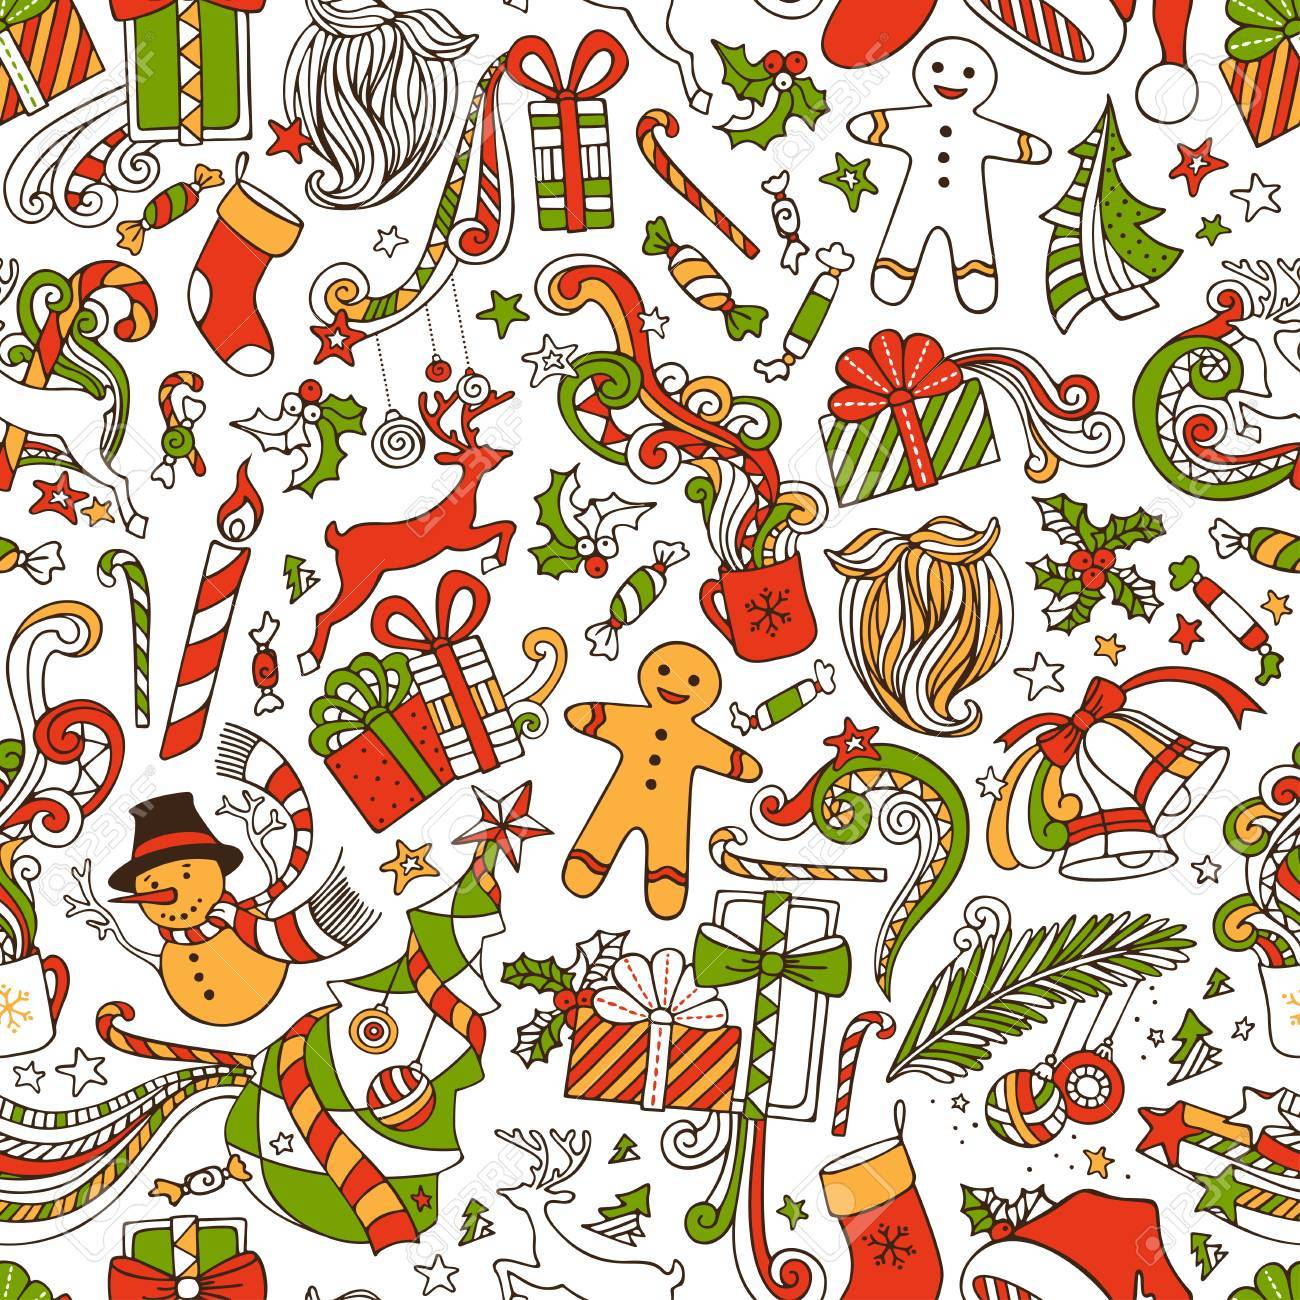 Boundless Funny Christmas Wallpaper Seamless Hand drawn Pattern 1300x1300